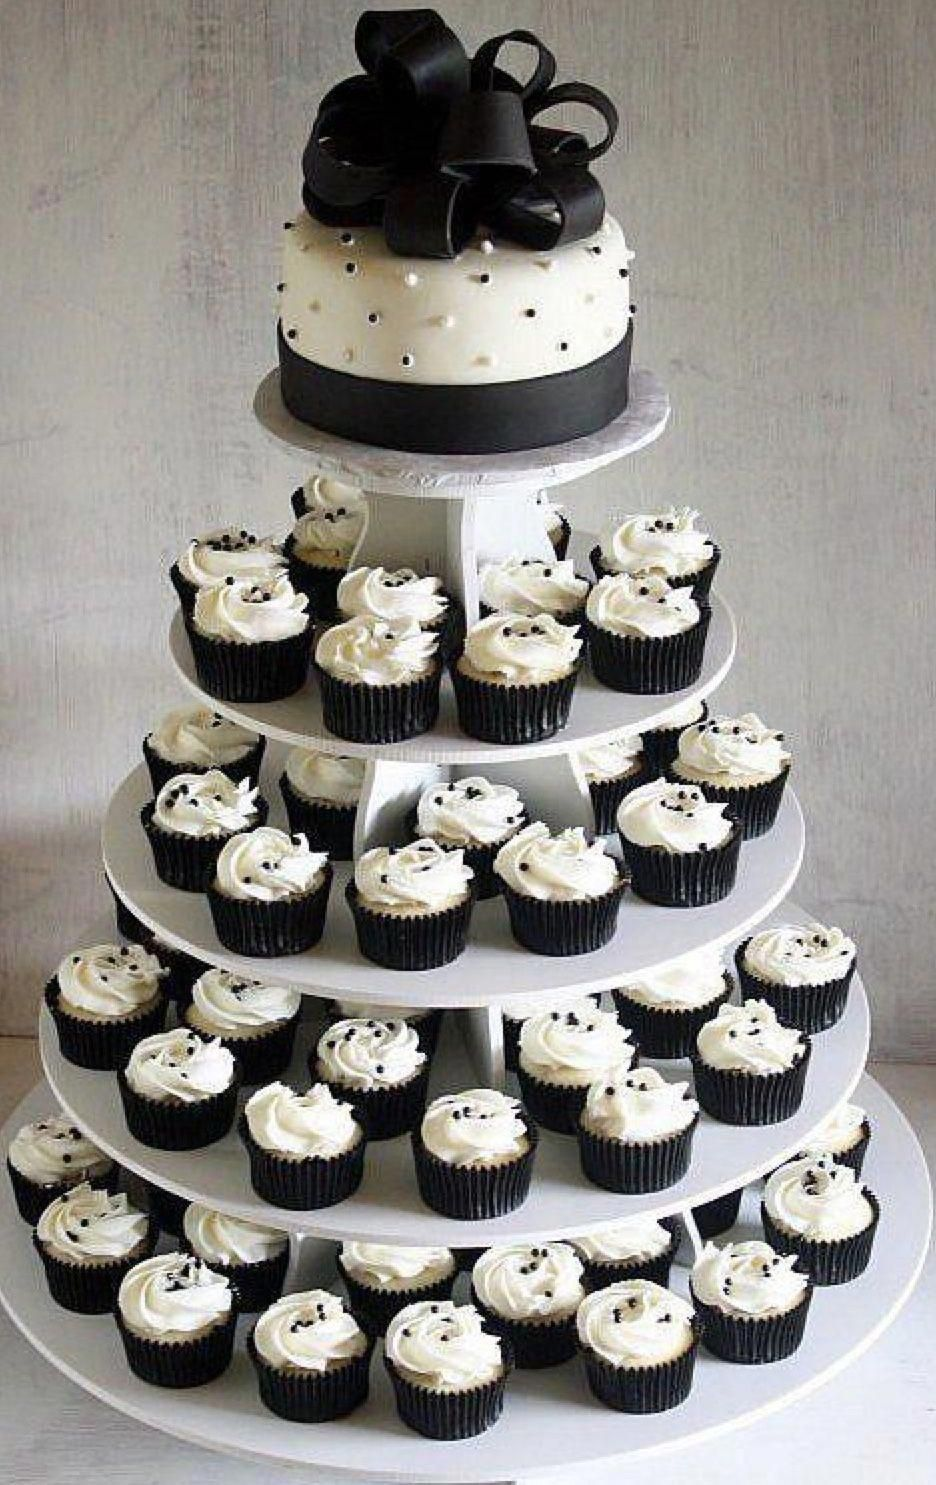 Usually Wedding Cakes Are Is The Conventional Cake Being Dished Up To The Visitor Cheap Wedding Cakes Black And White Wedding Cake Wedding Cakes With Cupcakes